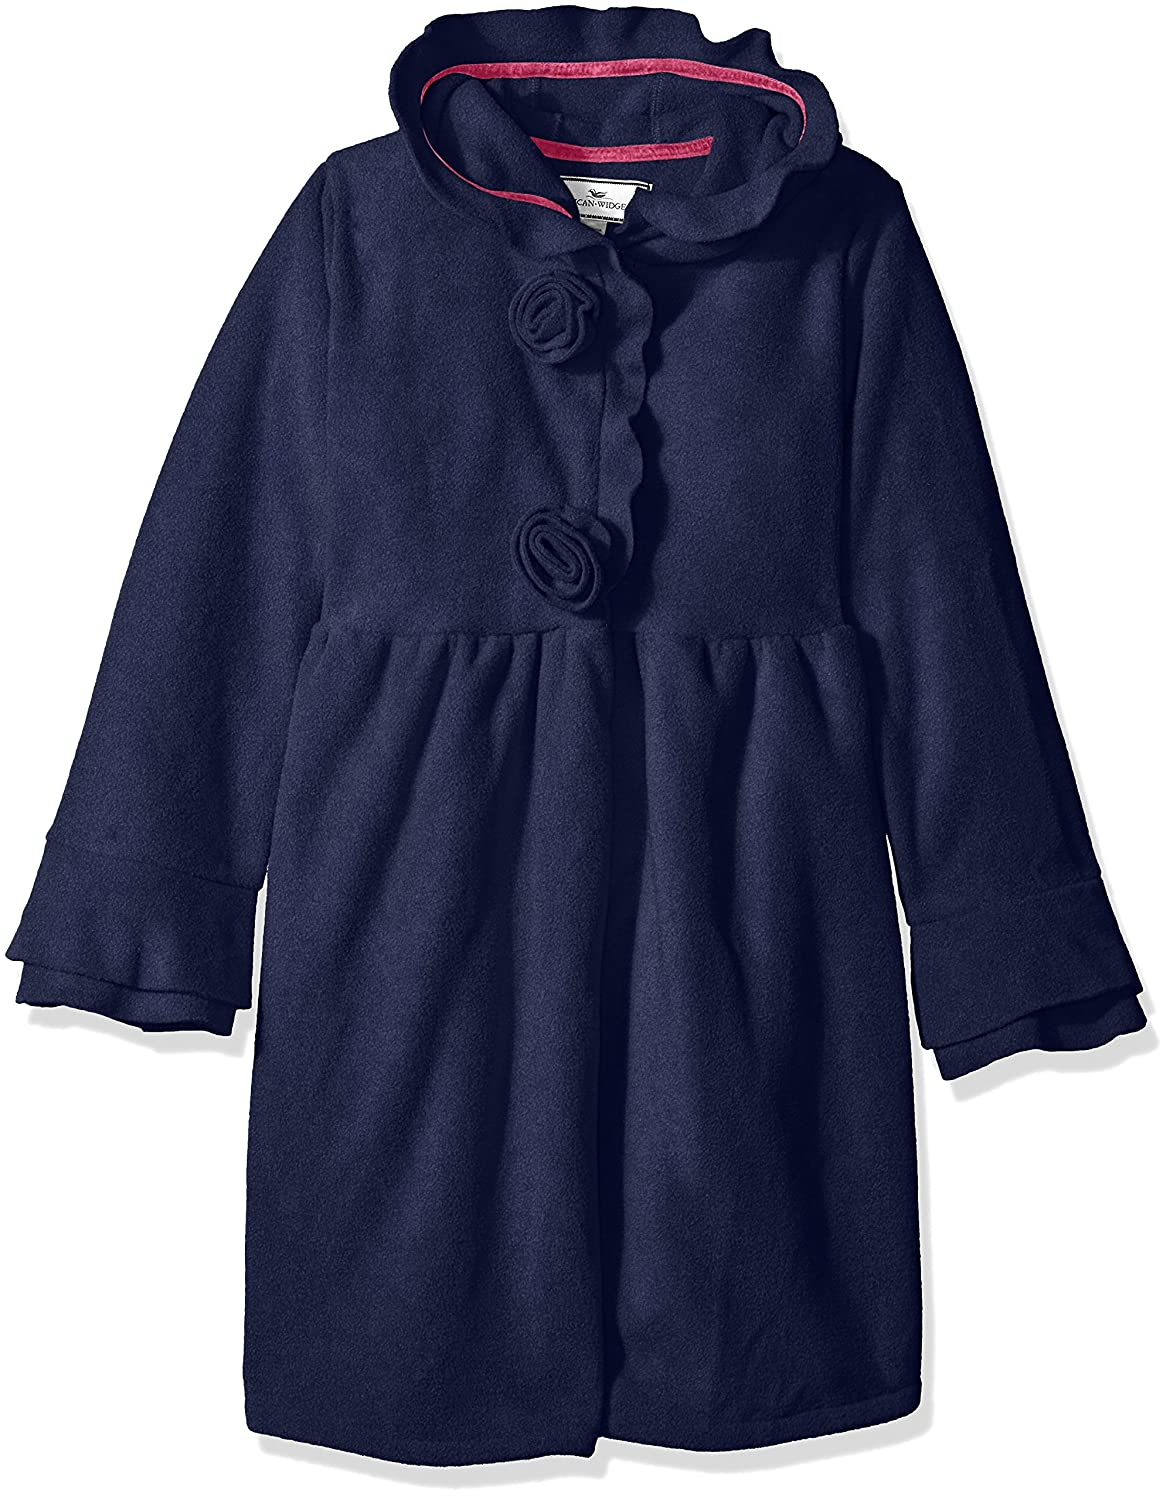 Widgeon Girls' Fleece Hooded Rosette Coat 3645